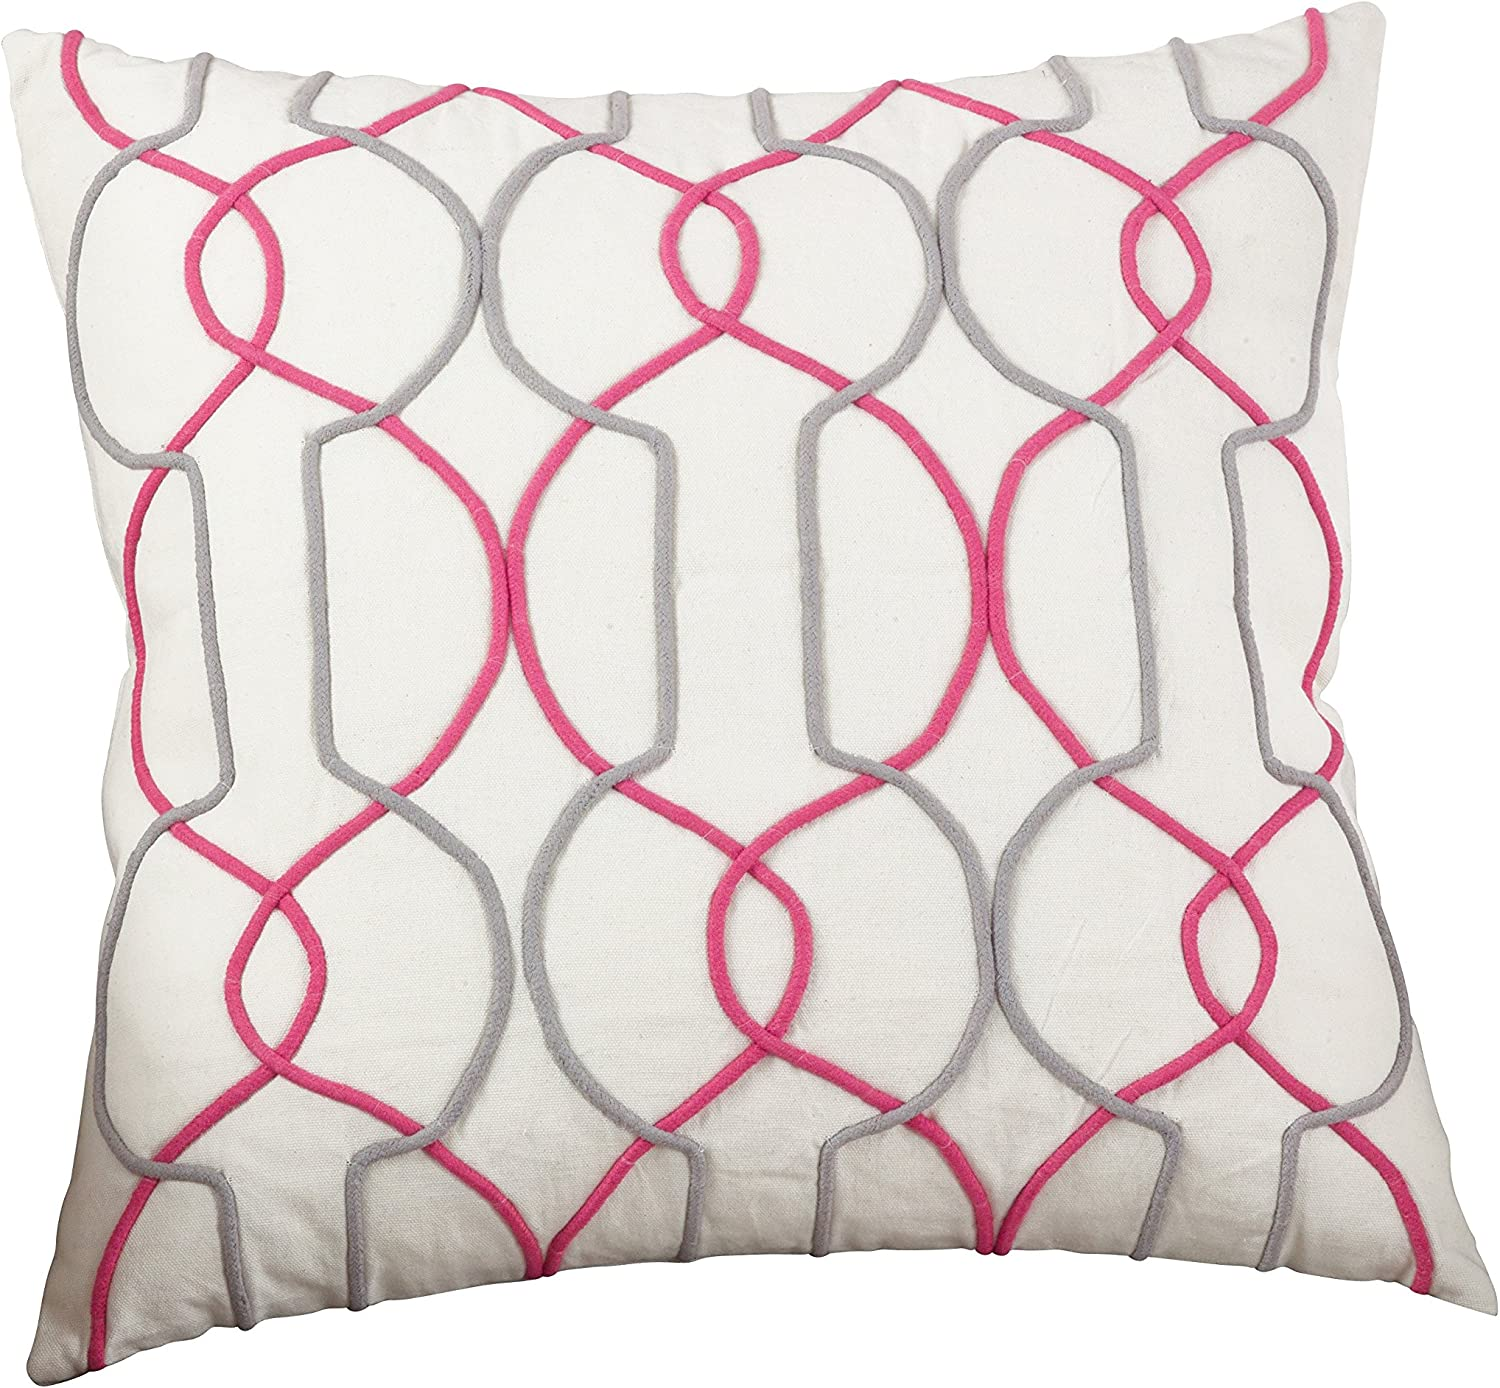 SARO LIFESTYLE The para Collection Cord Embroidered Geo Design Cotton Throw Pillow, Down Filled